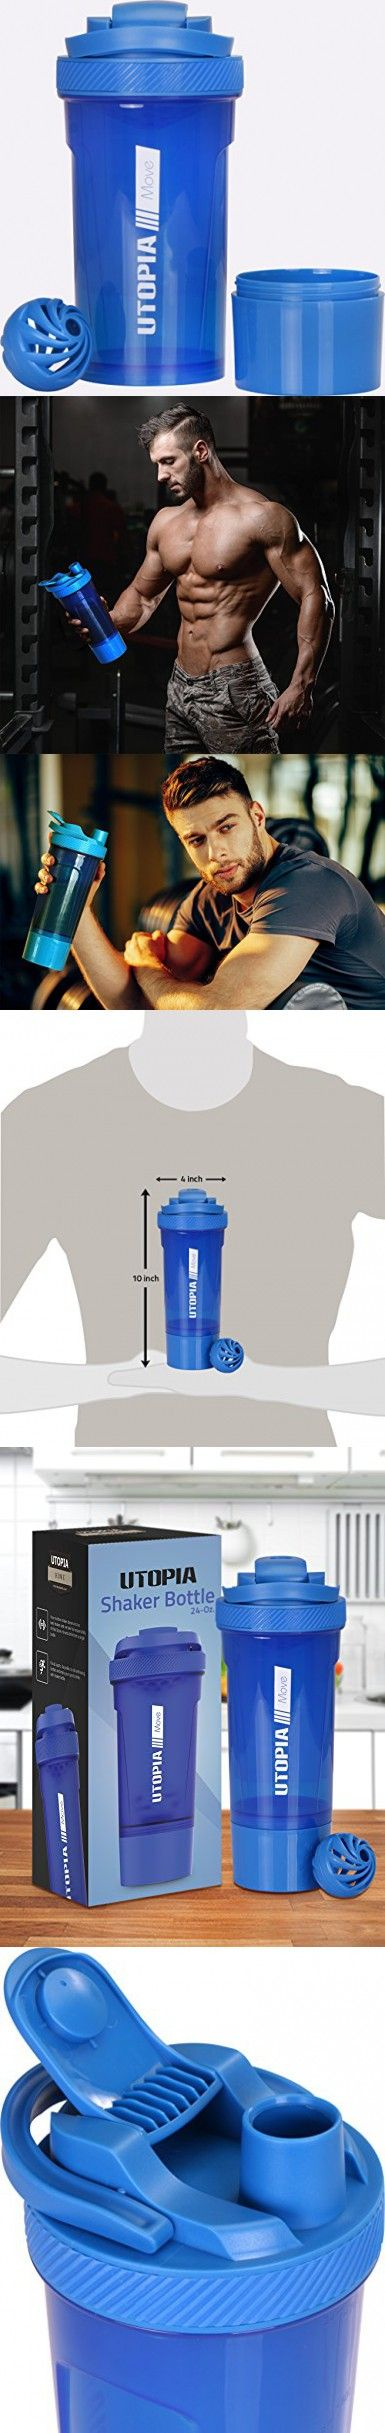 Classic Protein Mixer Shaker Bottle (24-Ounce Bottle) with Twist and Lock Protein Box Storage - Flip Cap and Tapered Spout - by Utopia Home (Blue)